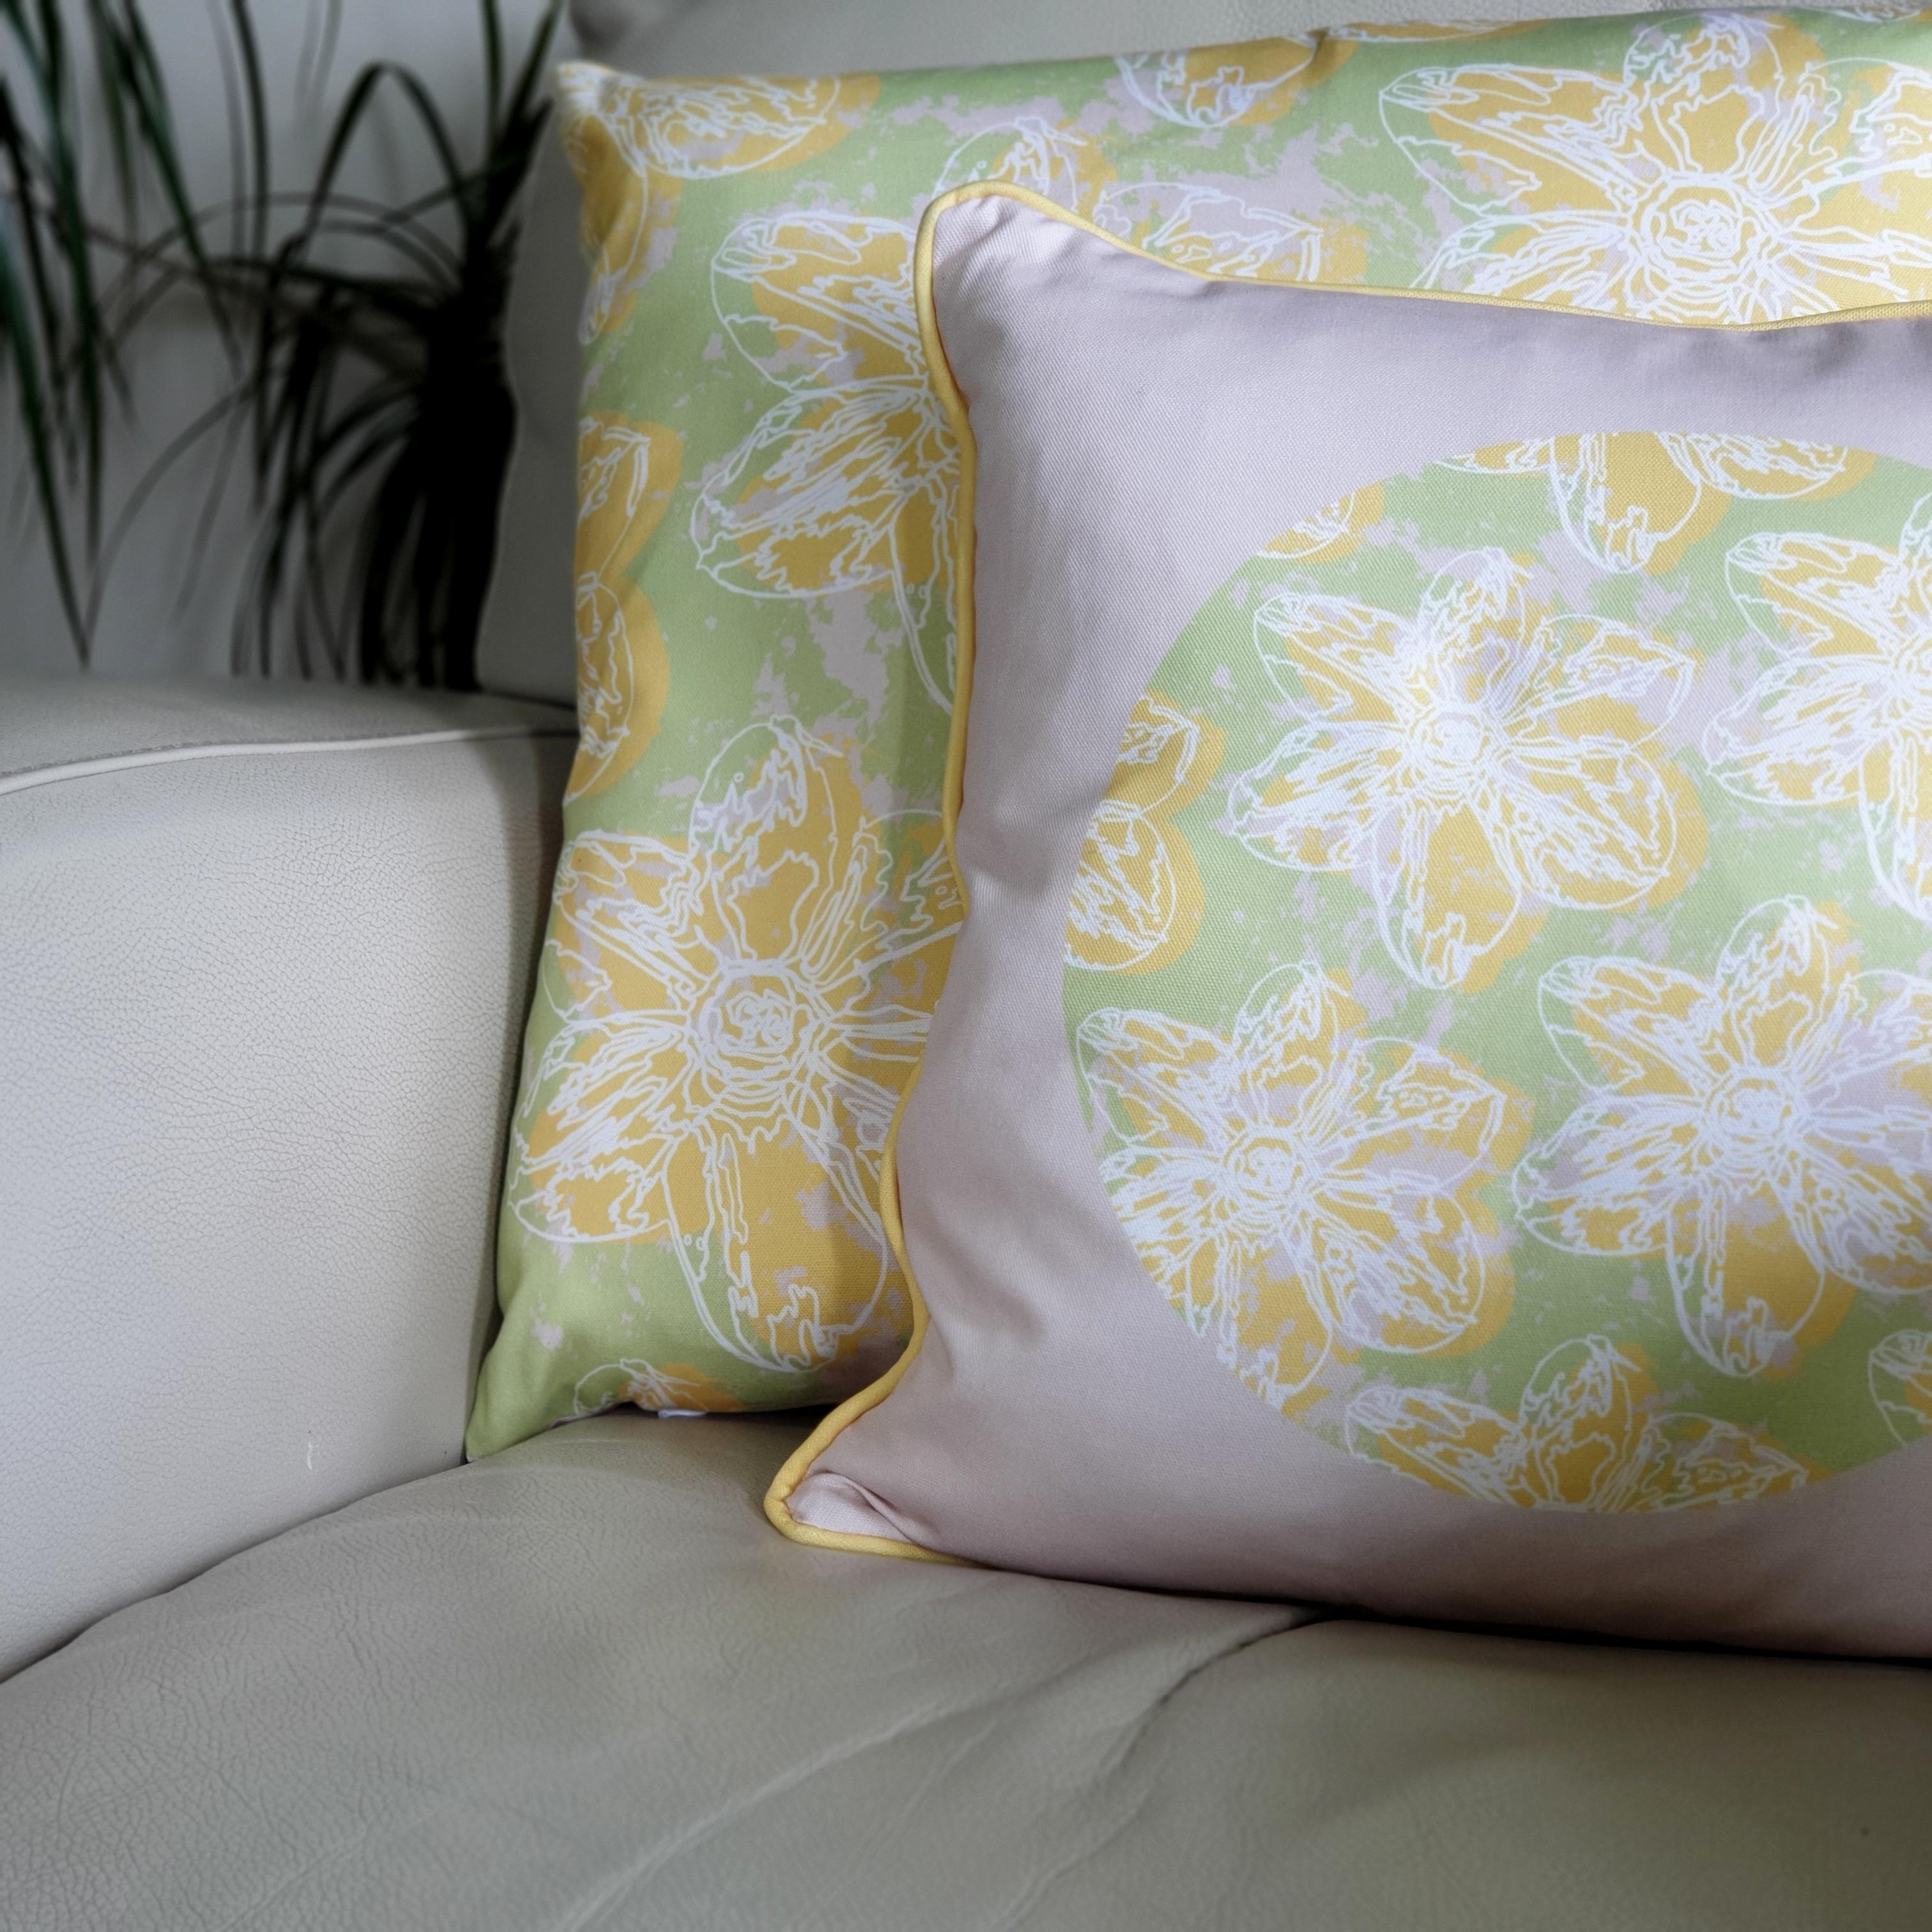 Double-sided 45cm square & 51cm square Flower Splash cushions, showing both sides, designed by thetinkan. Yellow narcissus flower with white traced outline set within a mint green background with pale pink paint splashes. Available with an optional luxury cushion inner pad. VIEW PRODUCT >>